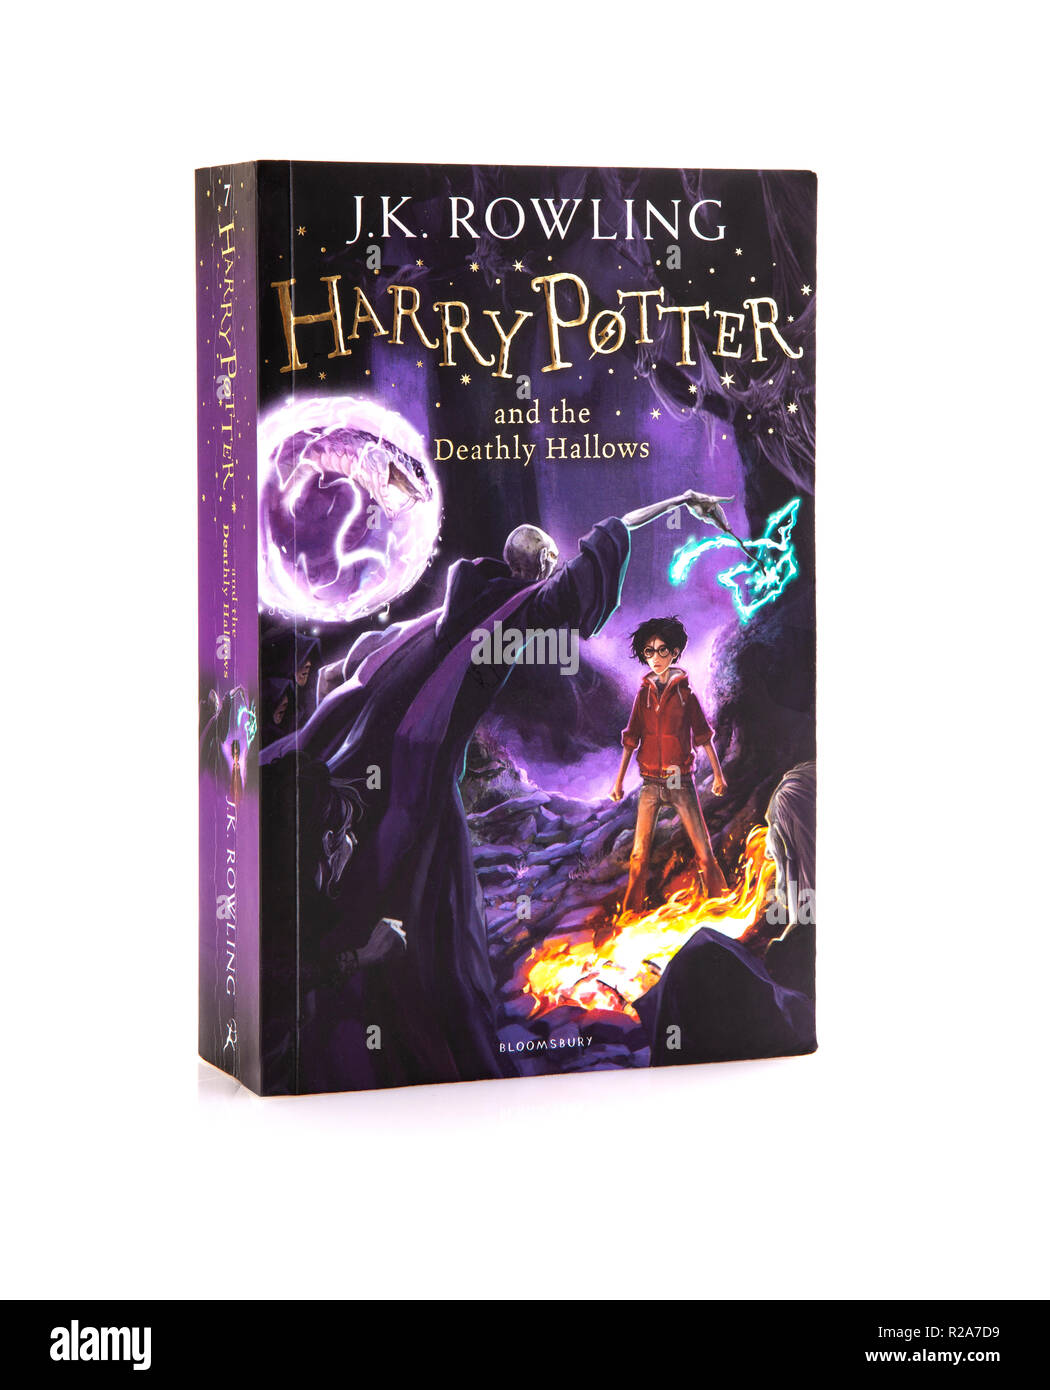 SWINDON, UK - NOVEMBER 18, 2018: Harry Potter And The Deathly Hallows Paperback Edition on a white background - Stock Image